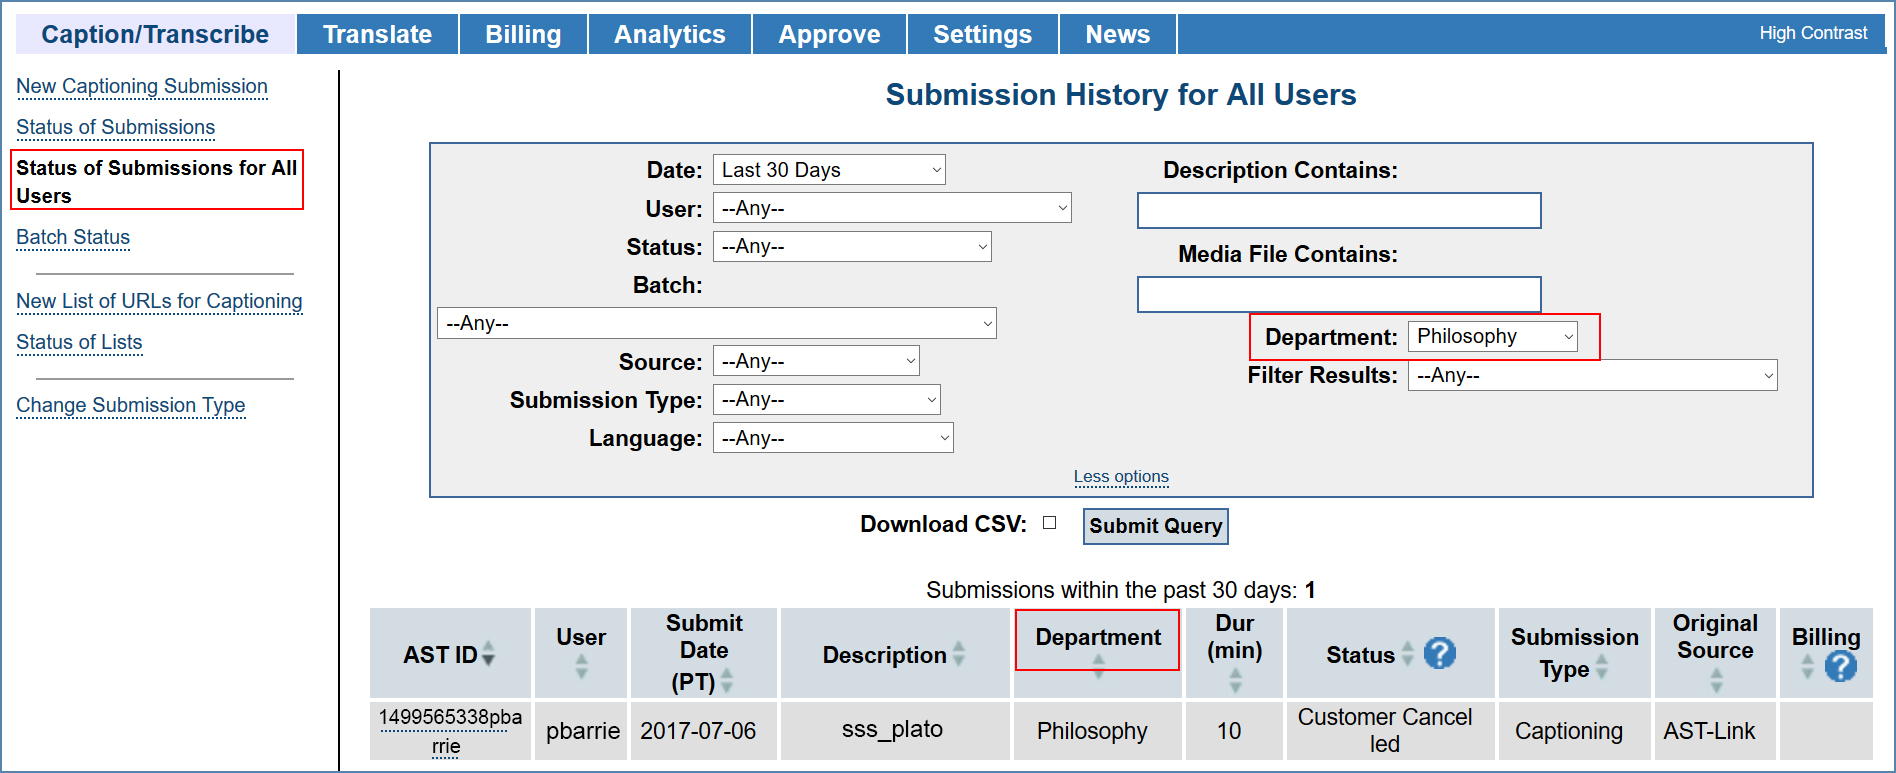 Image of the Status of Submissions for All Users page filtered by Department